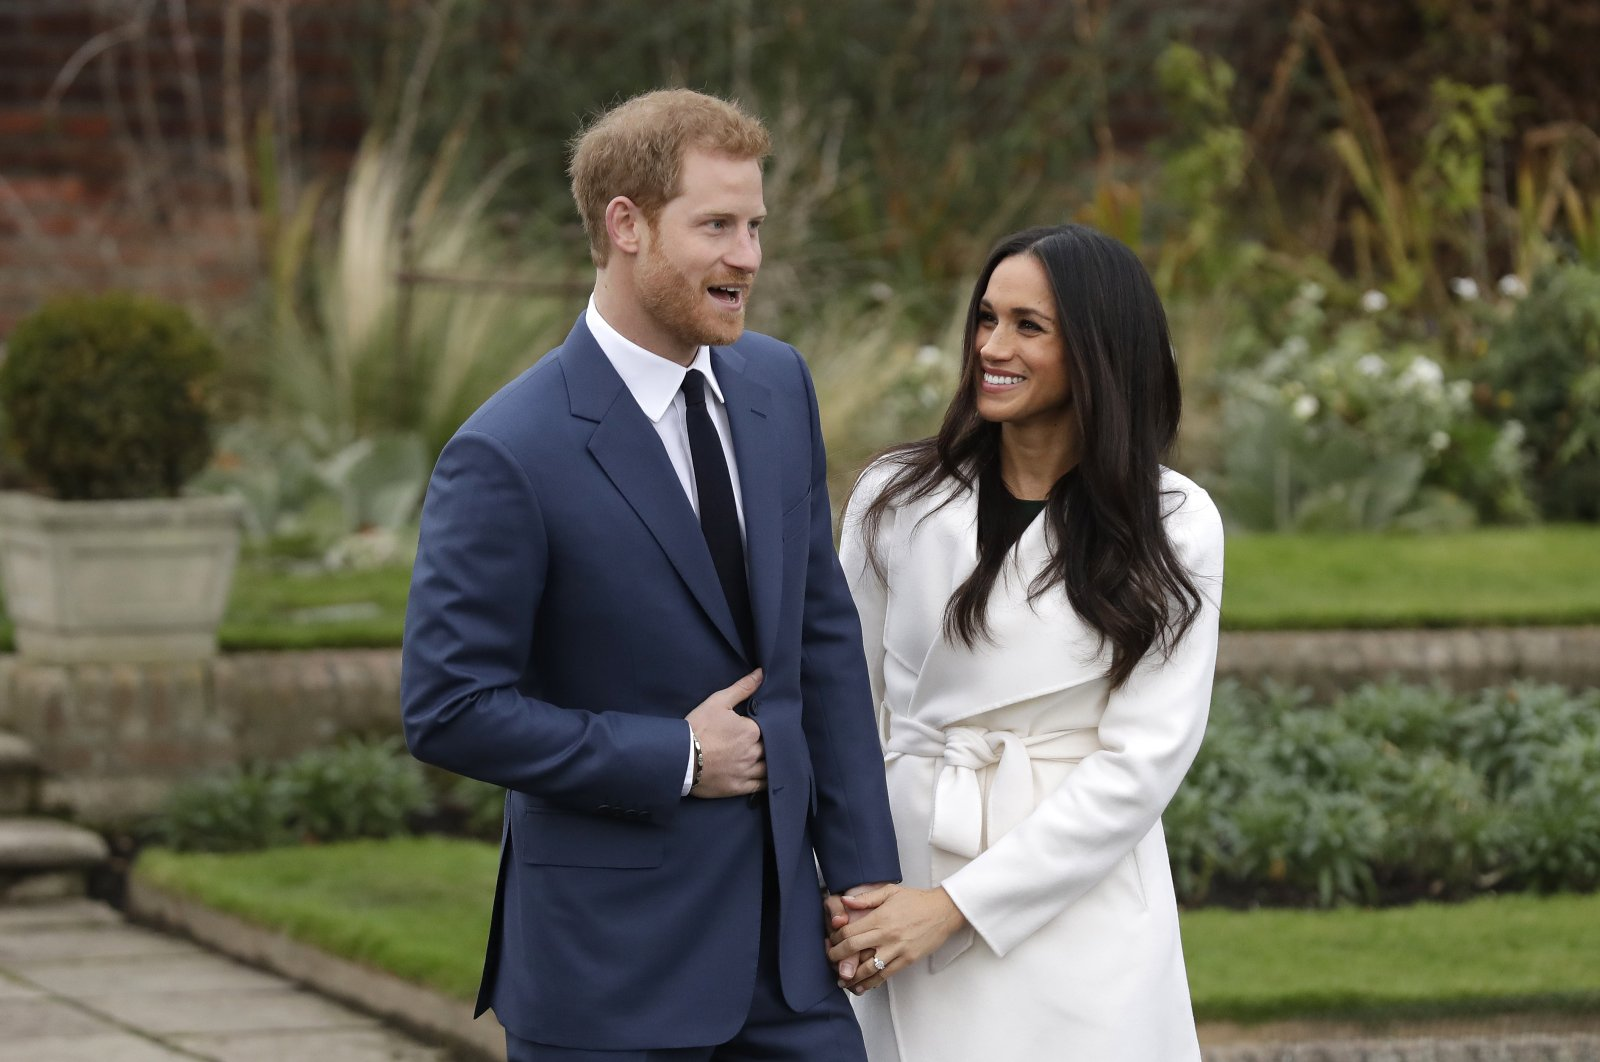 In this Monday, Nov. 27, 2017, file photo, Britain's Prince Harry and his fiancee Meghan Markle pose for photographers on the grounds of Kensington Palace in London, after announcing their engagement. (AP Photo)